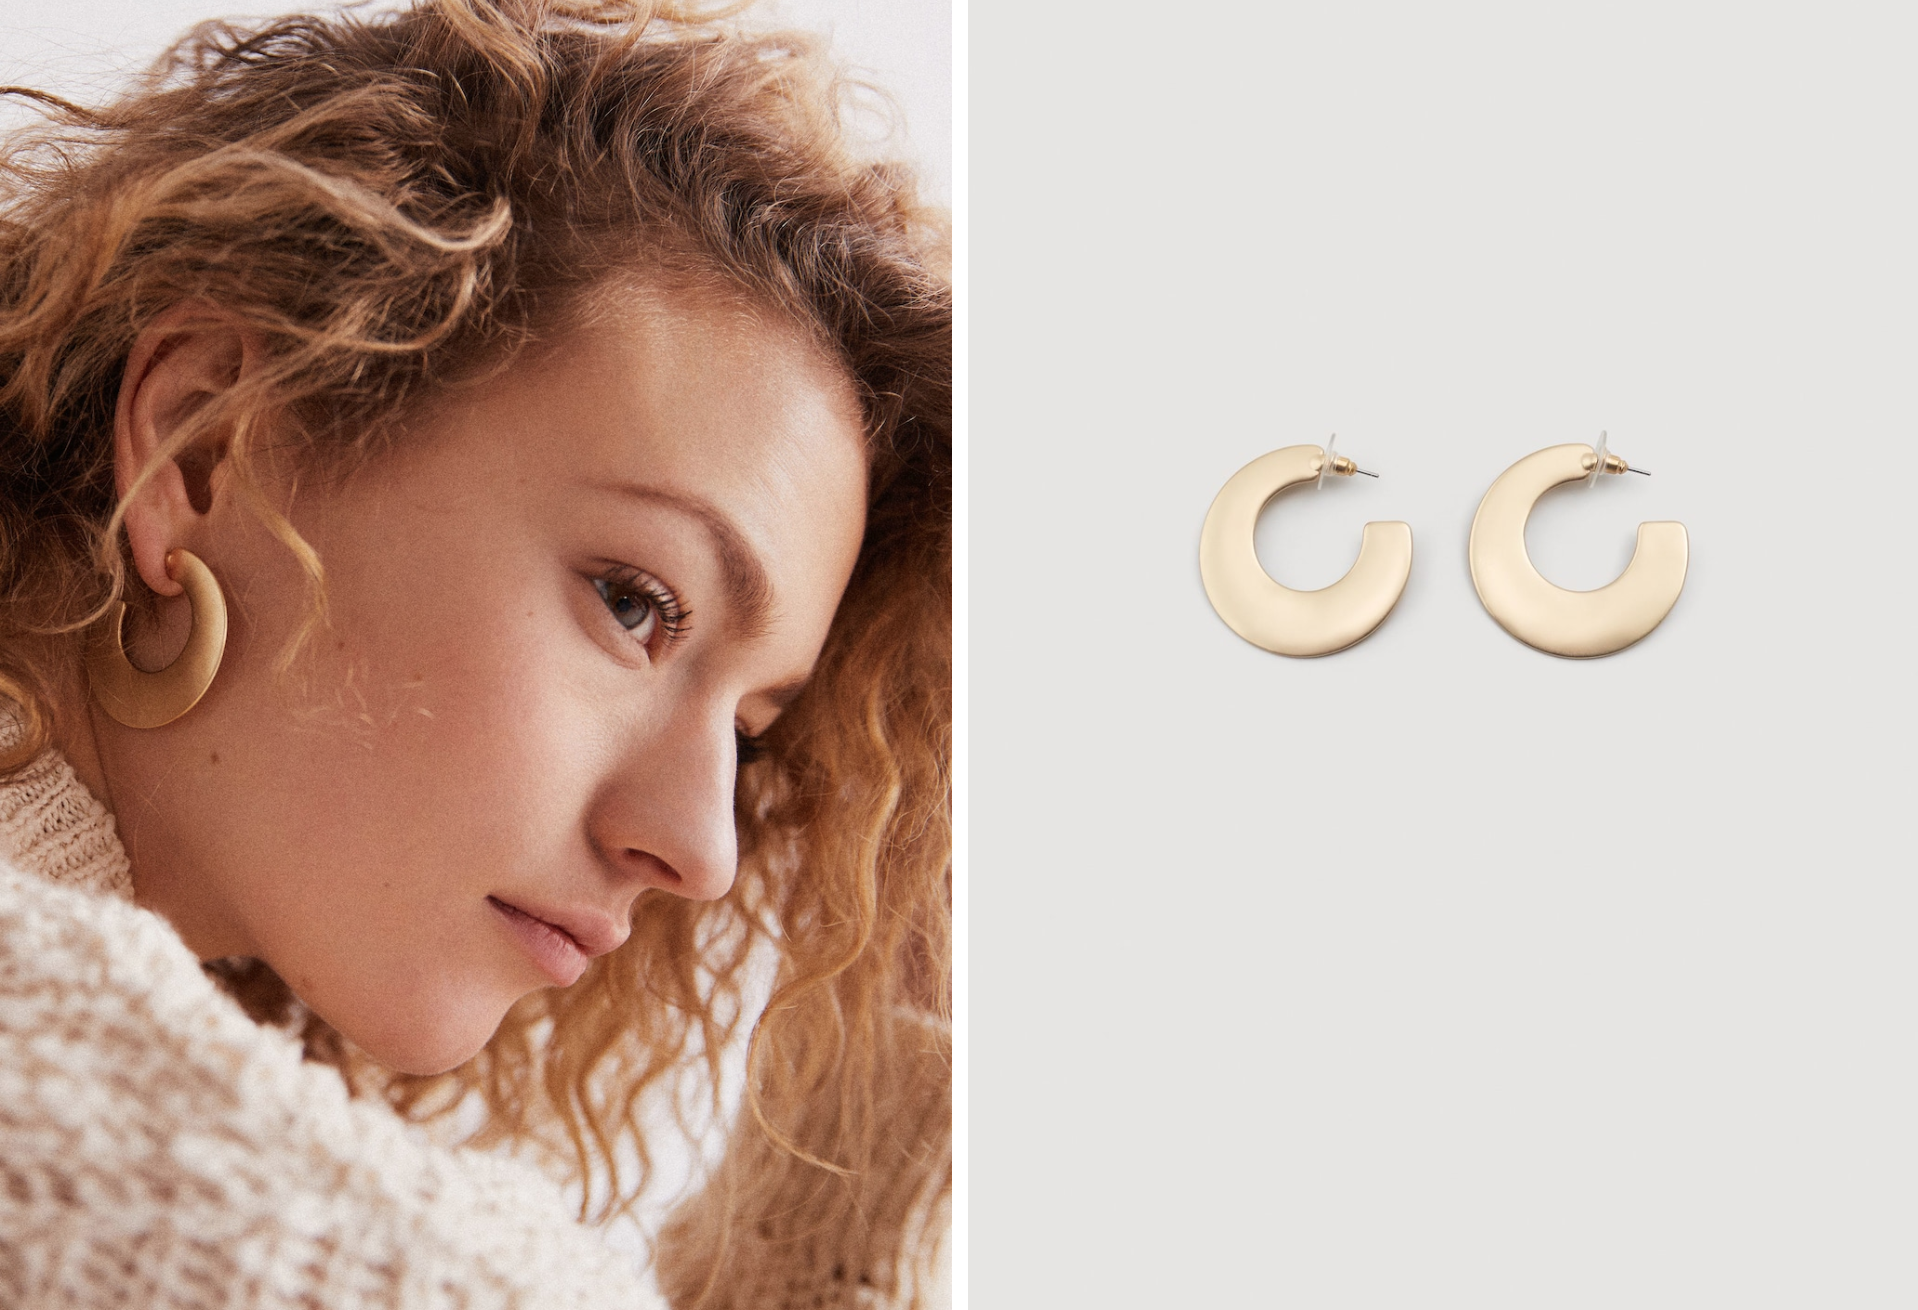 GoldMetallic hoop earrings - These simple Metallic hoop earrings are made of 100% steel and are the sort of earrings which you can combine with anything really. From a simple white T-Shirt to a dress. Find them from Mango here for only £6.99!